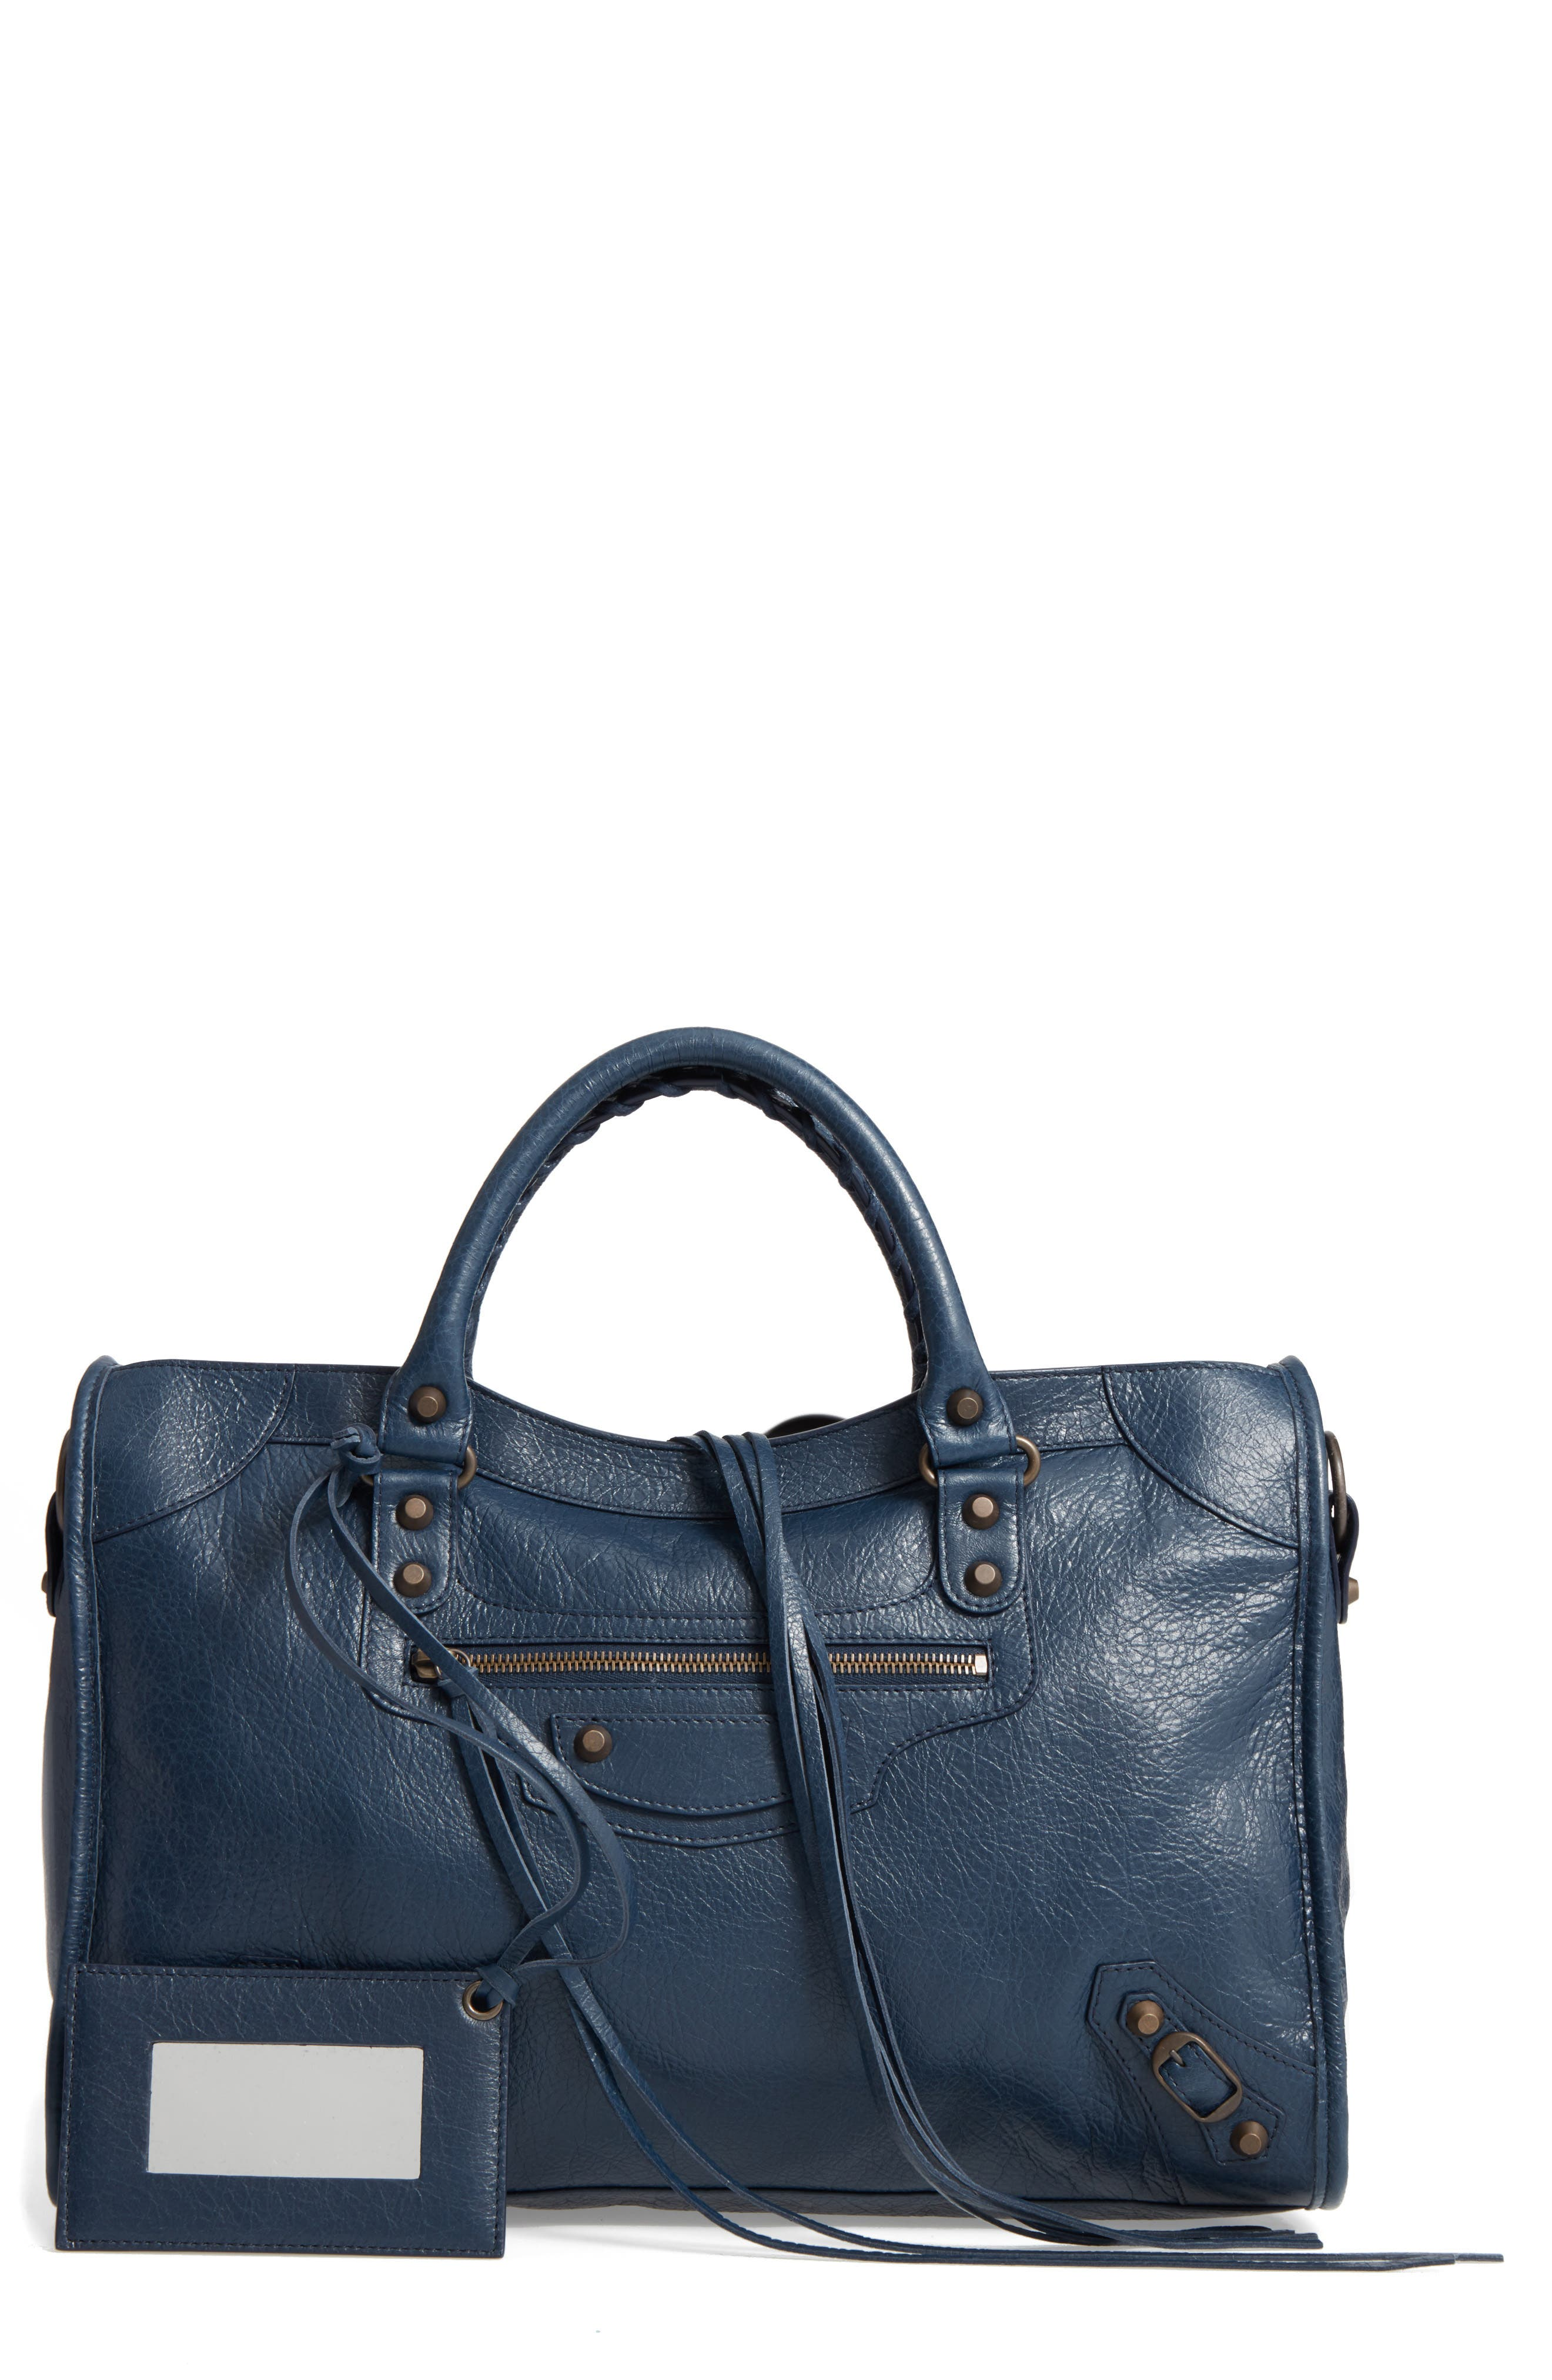 CLASSIC CITY LEATHER TOTE - BLUE